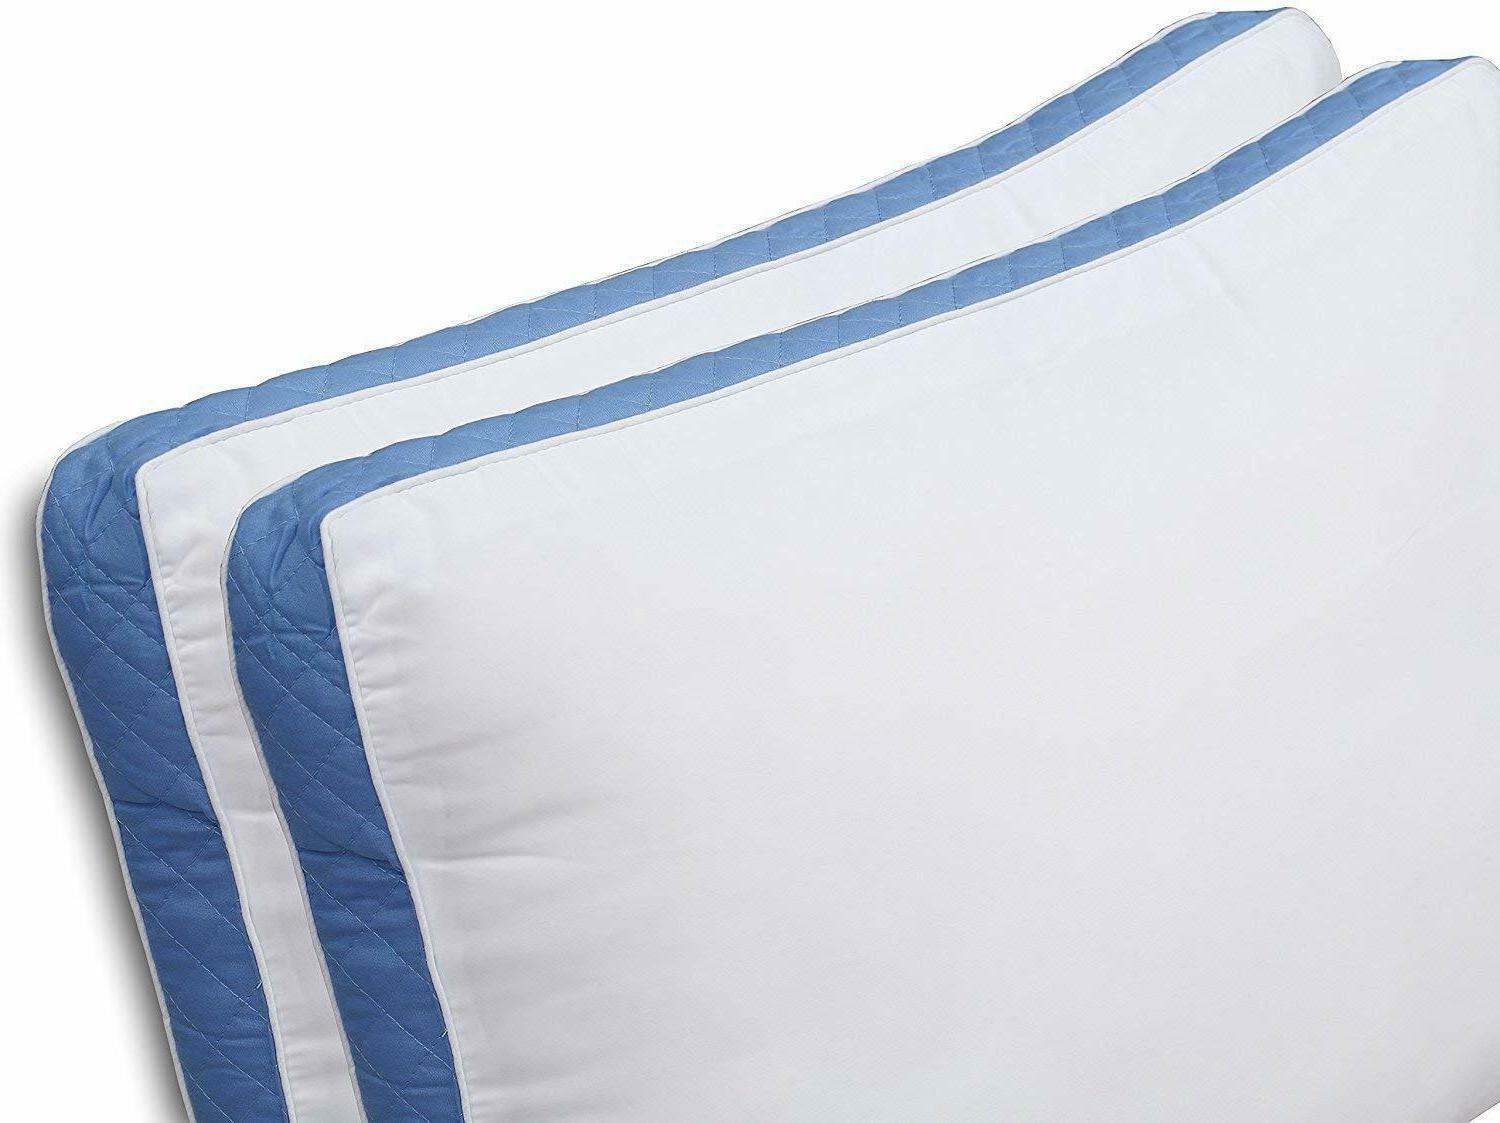 Utopia Gusseted Pillow 2 Pillows Side Back Sleepers